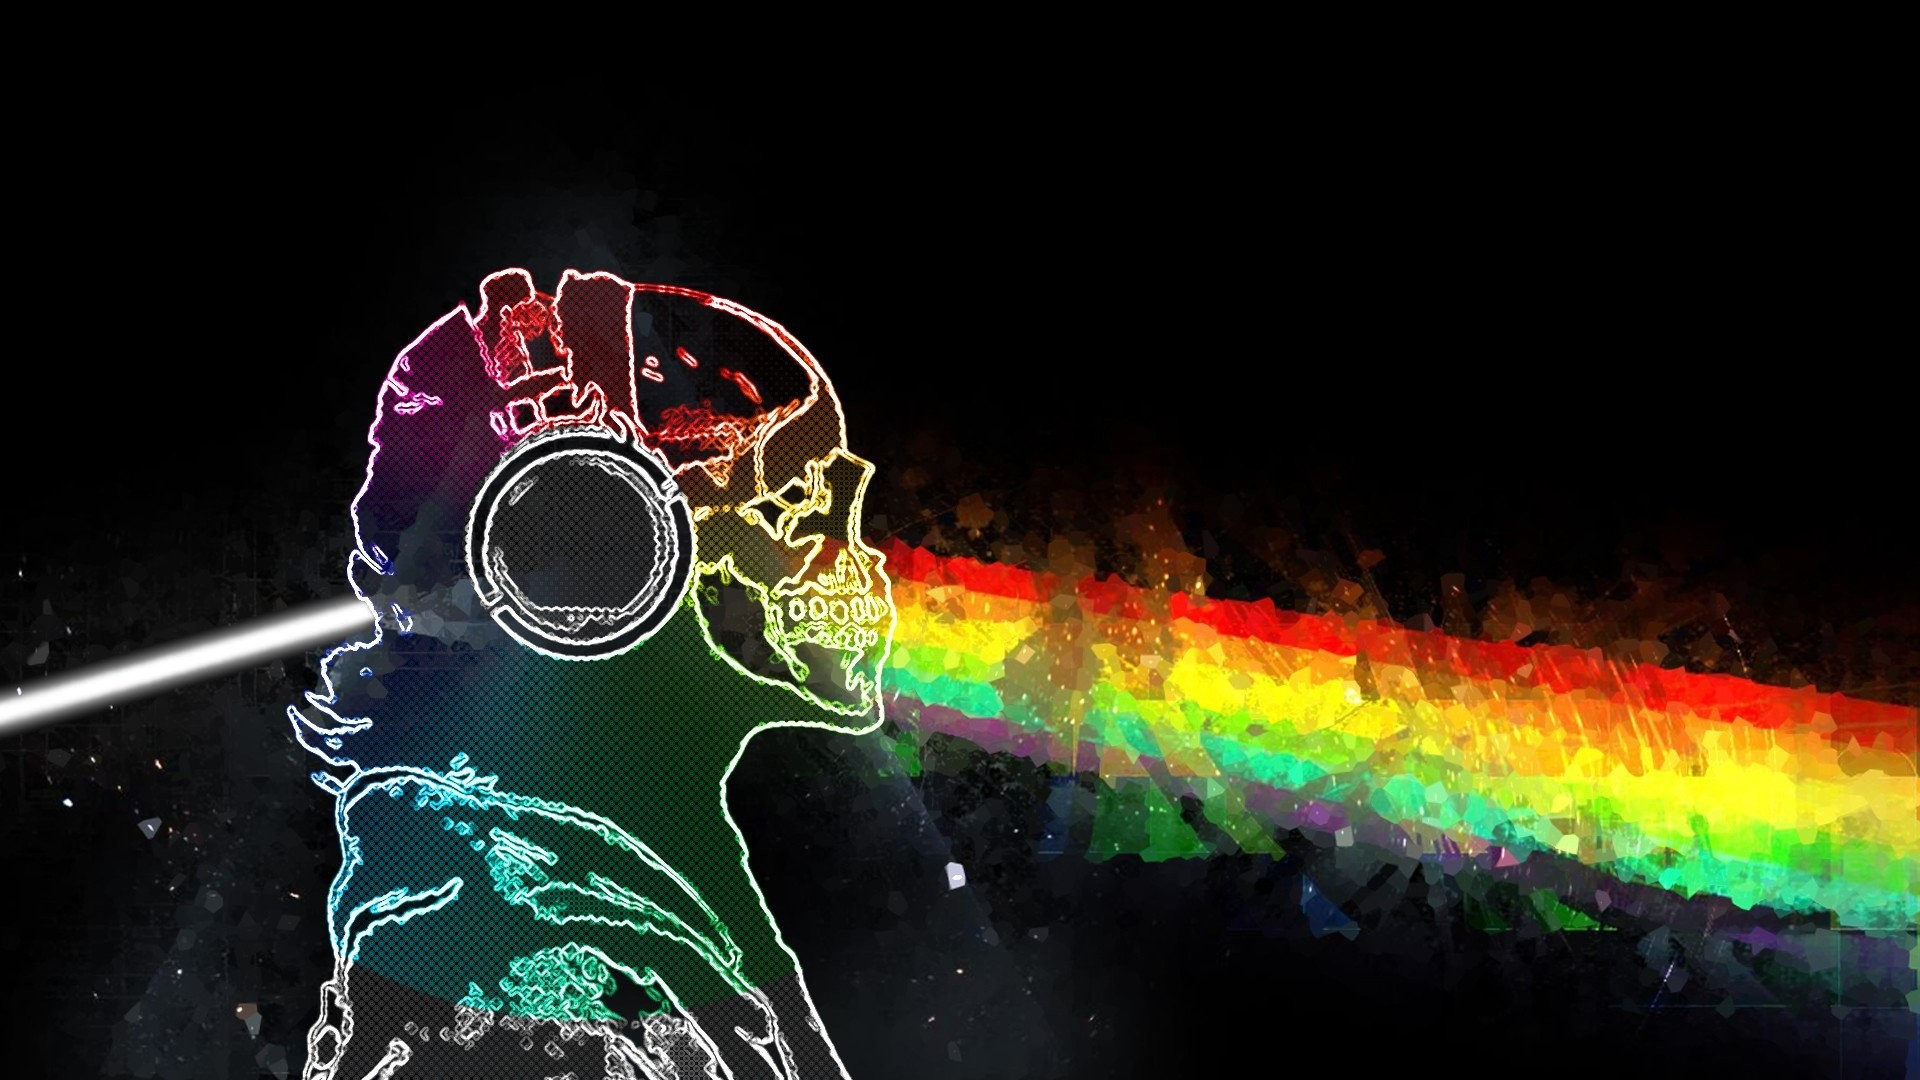 1920x1080  skull and bones rainbows prisma music pink floyd wallpaper and  background JPG 301 kB